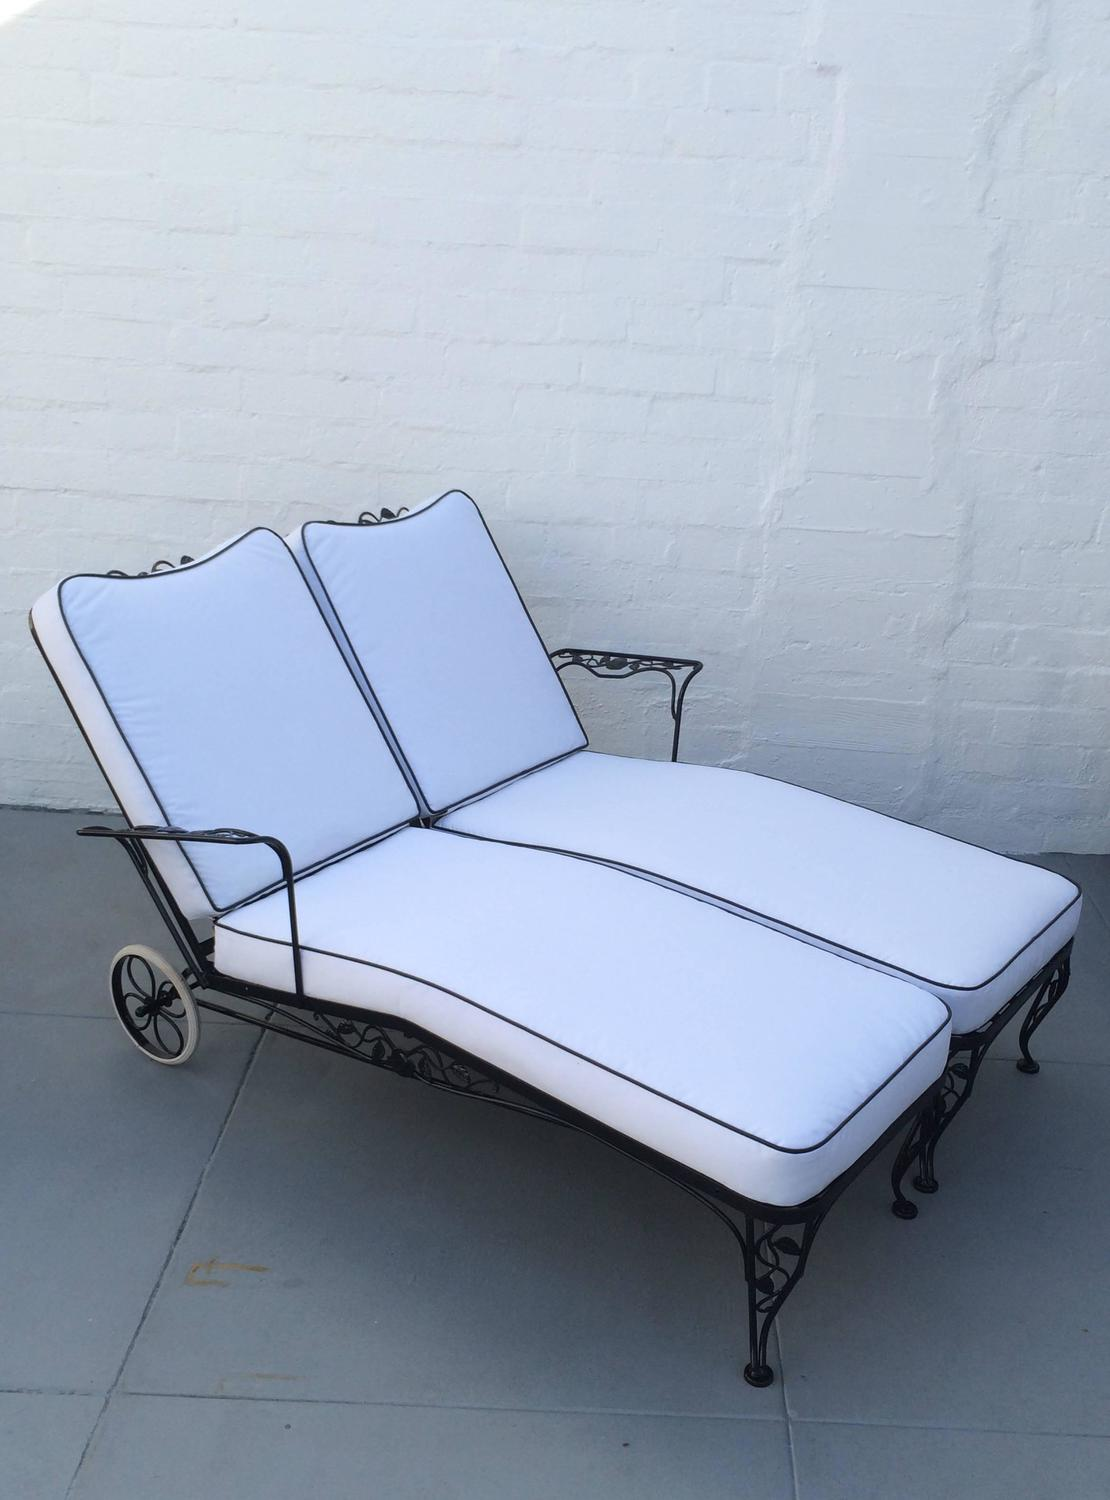 Wrought Iron Lounge Chaise for Two Designed by Russell Woodard at 1stdibs